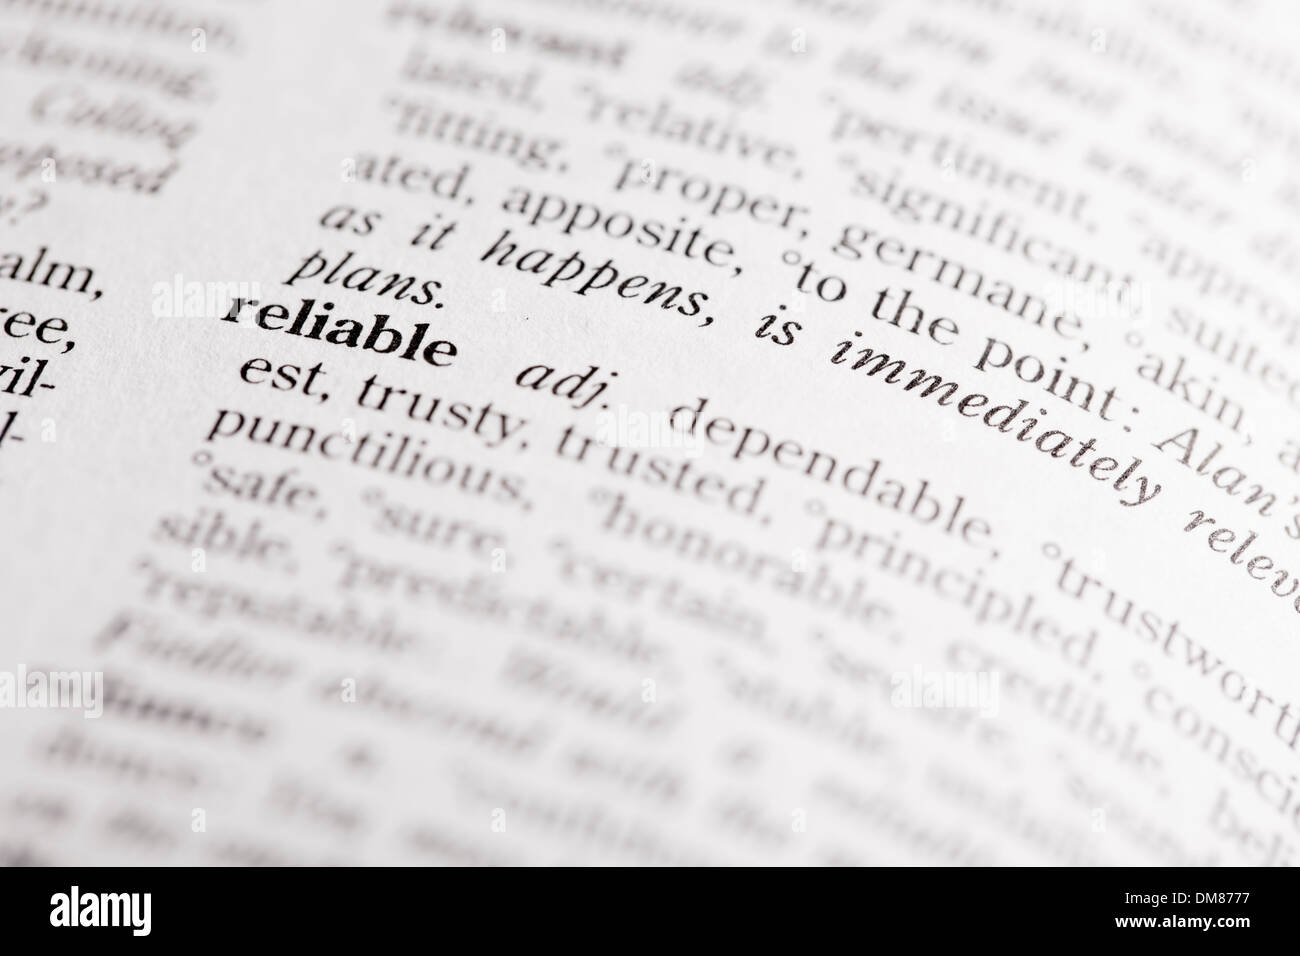 Dictionary definition of 'Reliable' - Stock Image